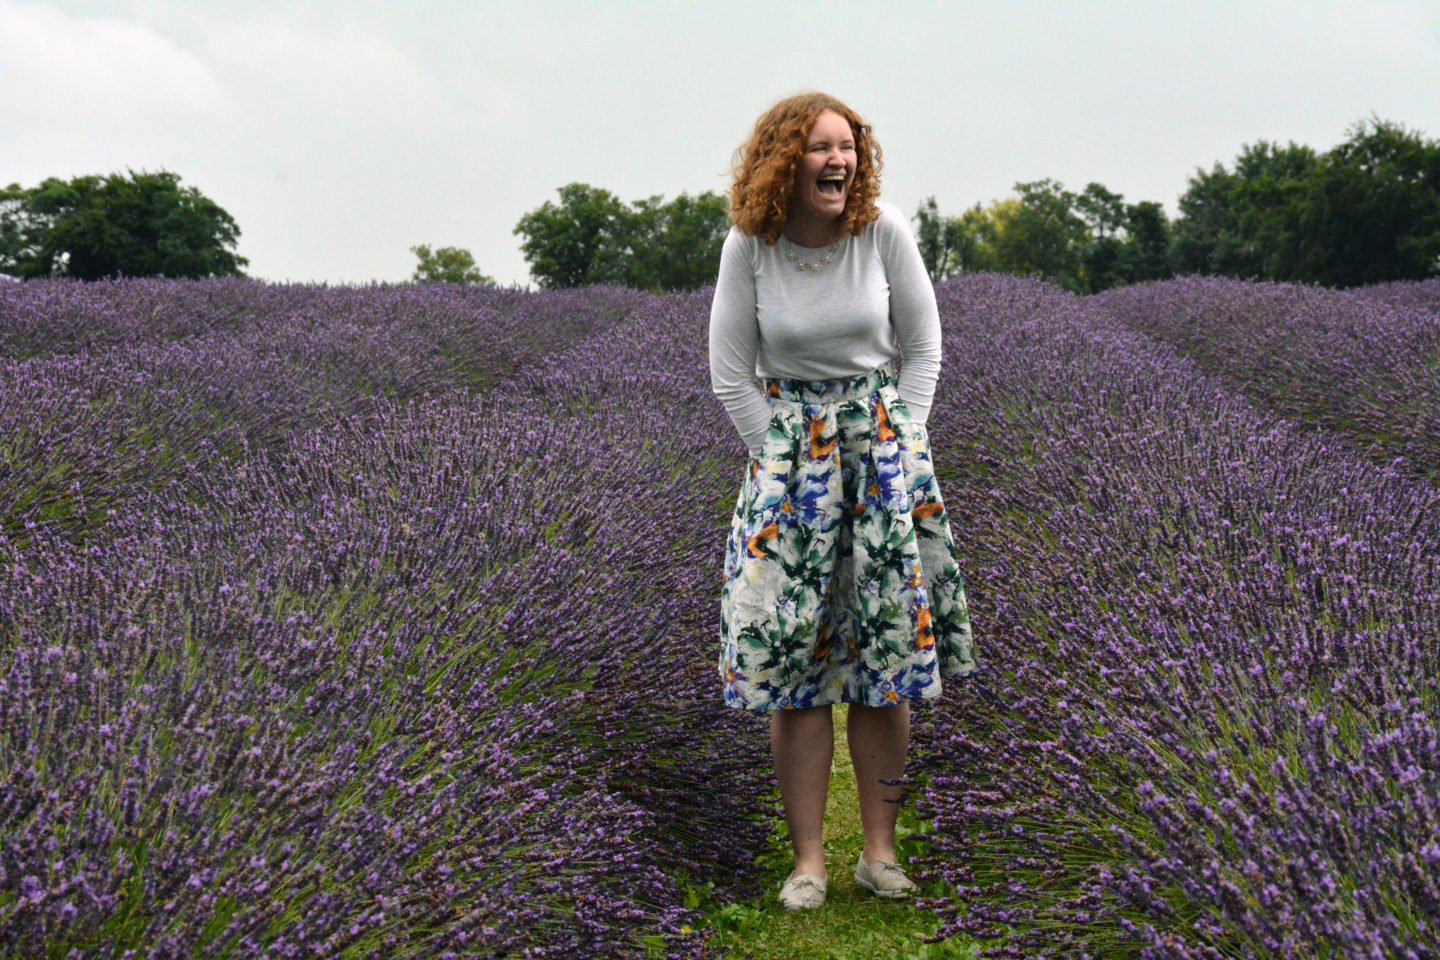 Sophie in the lavender field